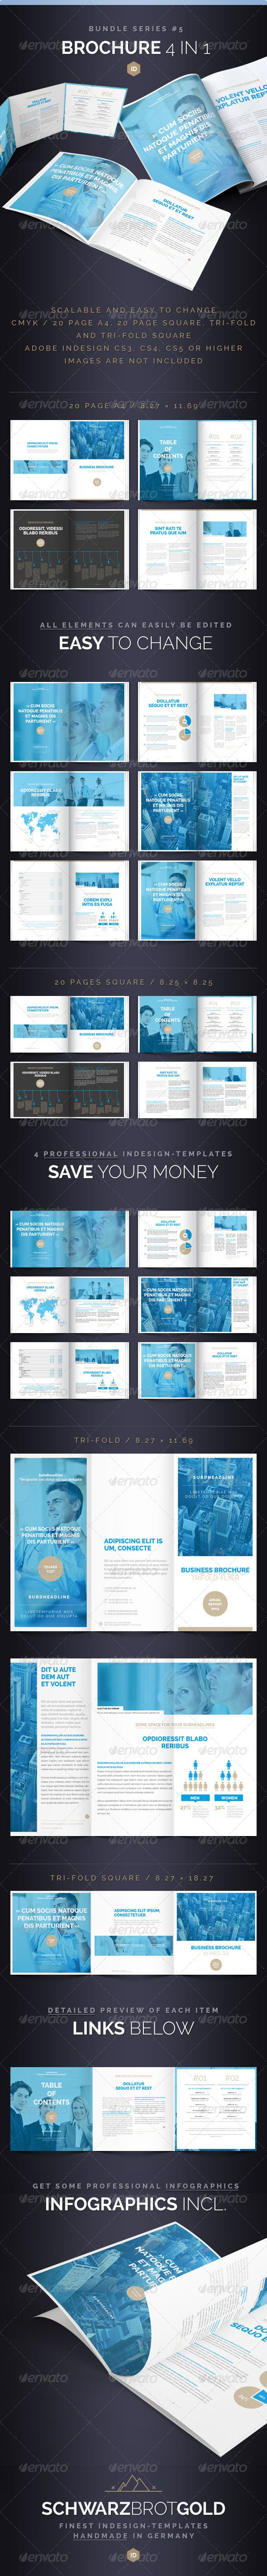 Brochure Bundle Series 5  #GraphicRiver        Brochure Bundle Series 5 InDesign CS3 / CS4 / CS5  Hello! Thank you very much for purchasing this